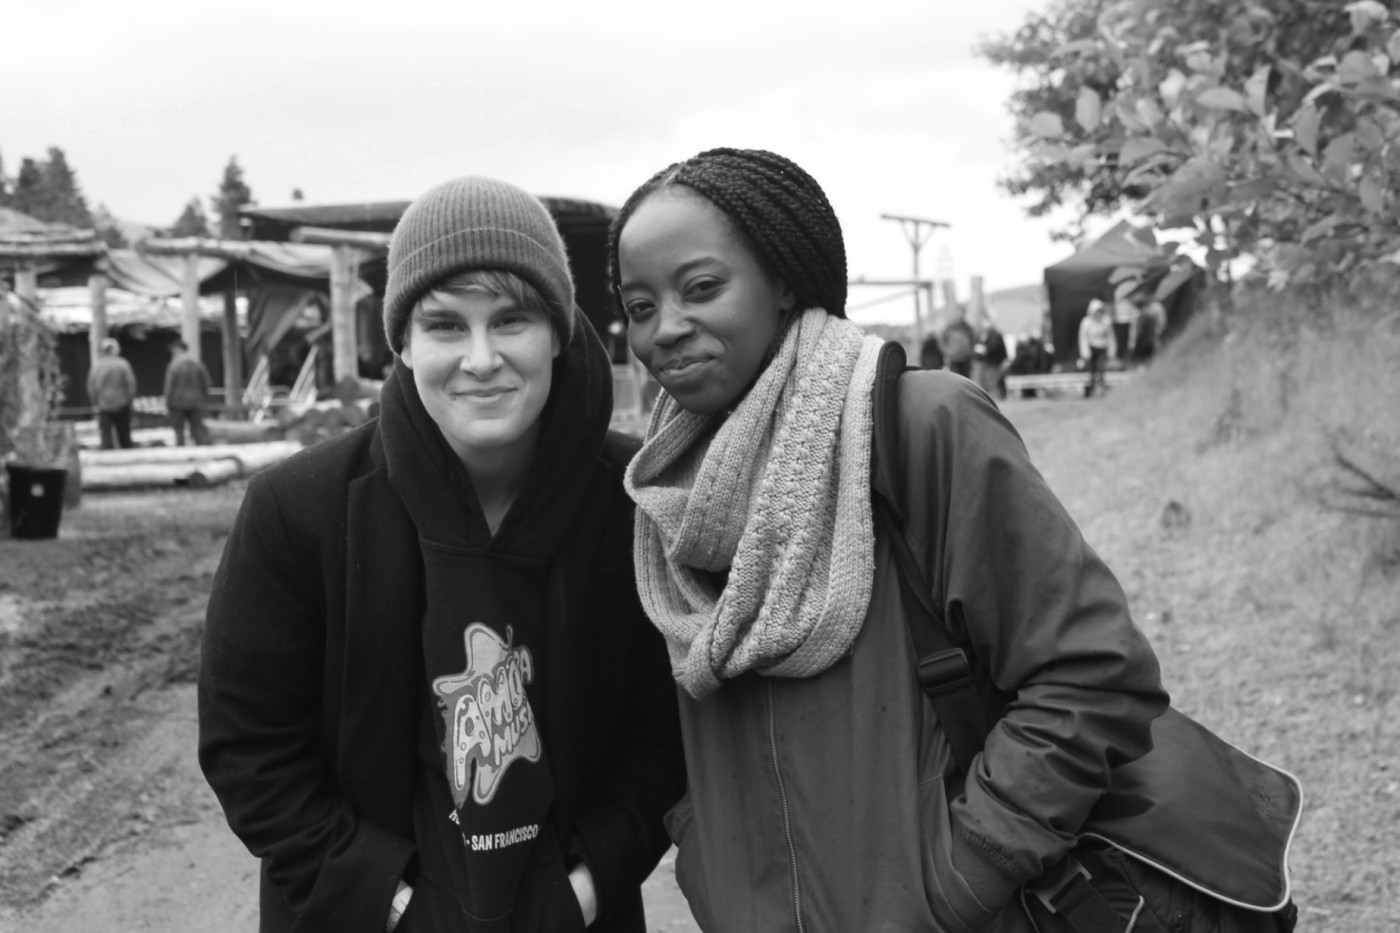 Greyscale. A butch white woman (Sofia B) standing next to a black woman with long braided hair. They are both smiling.